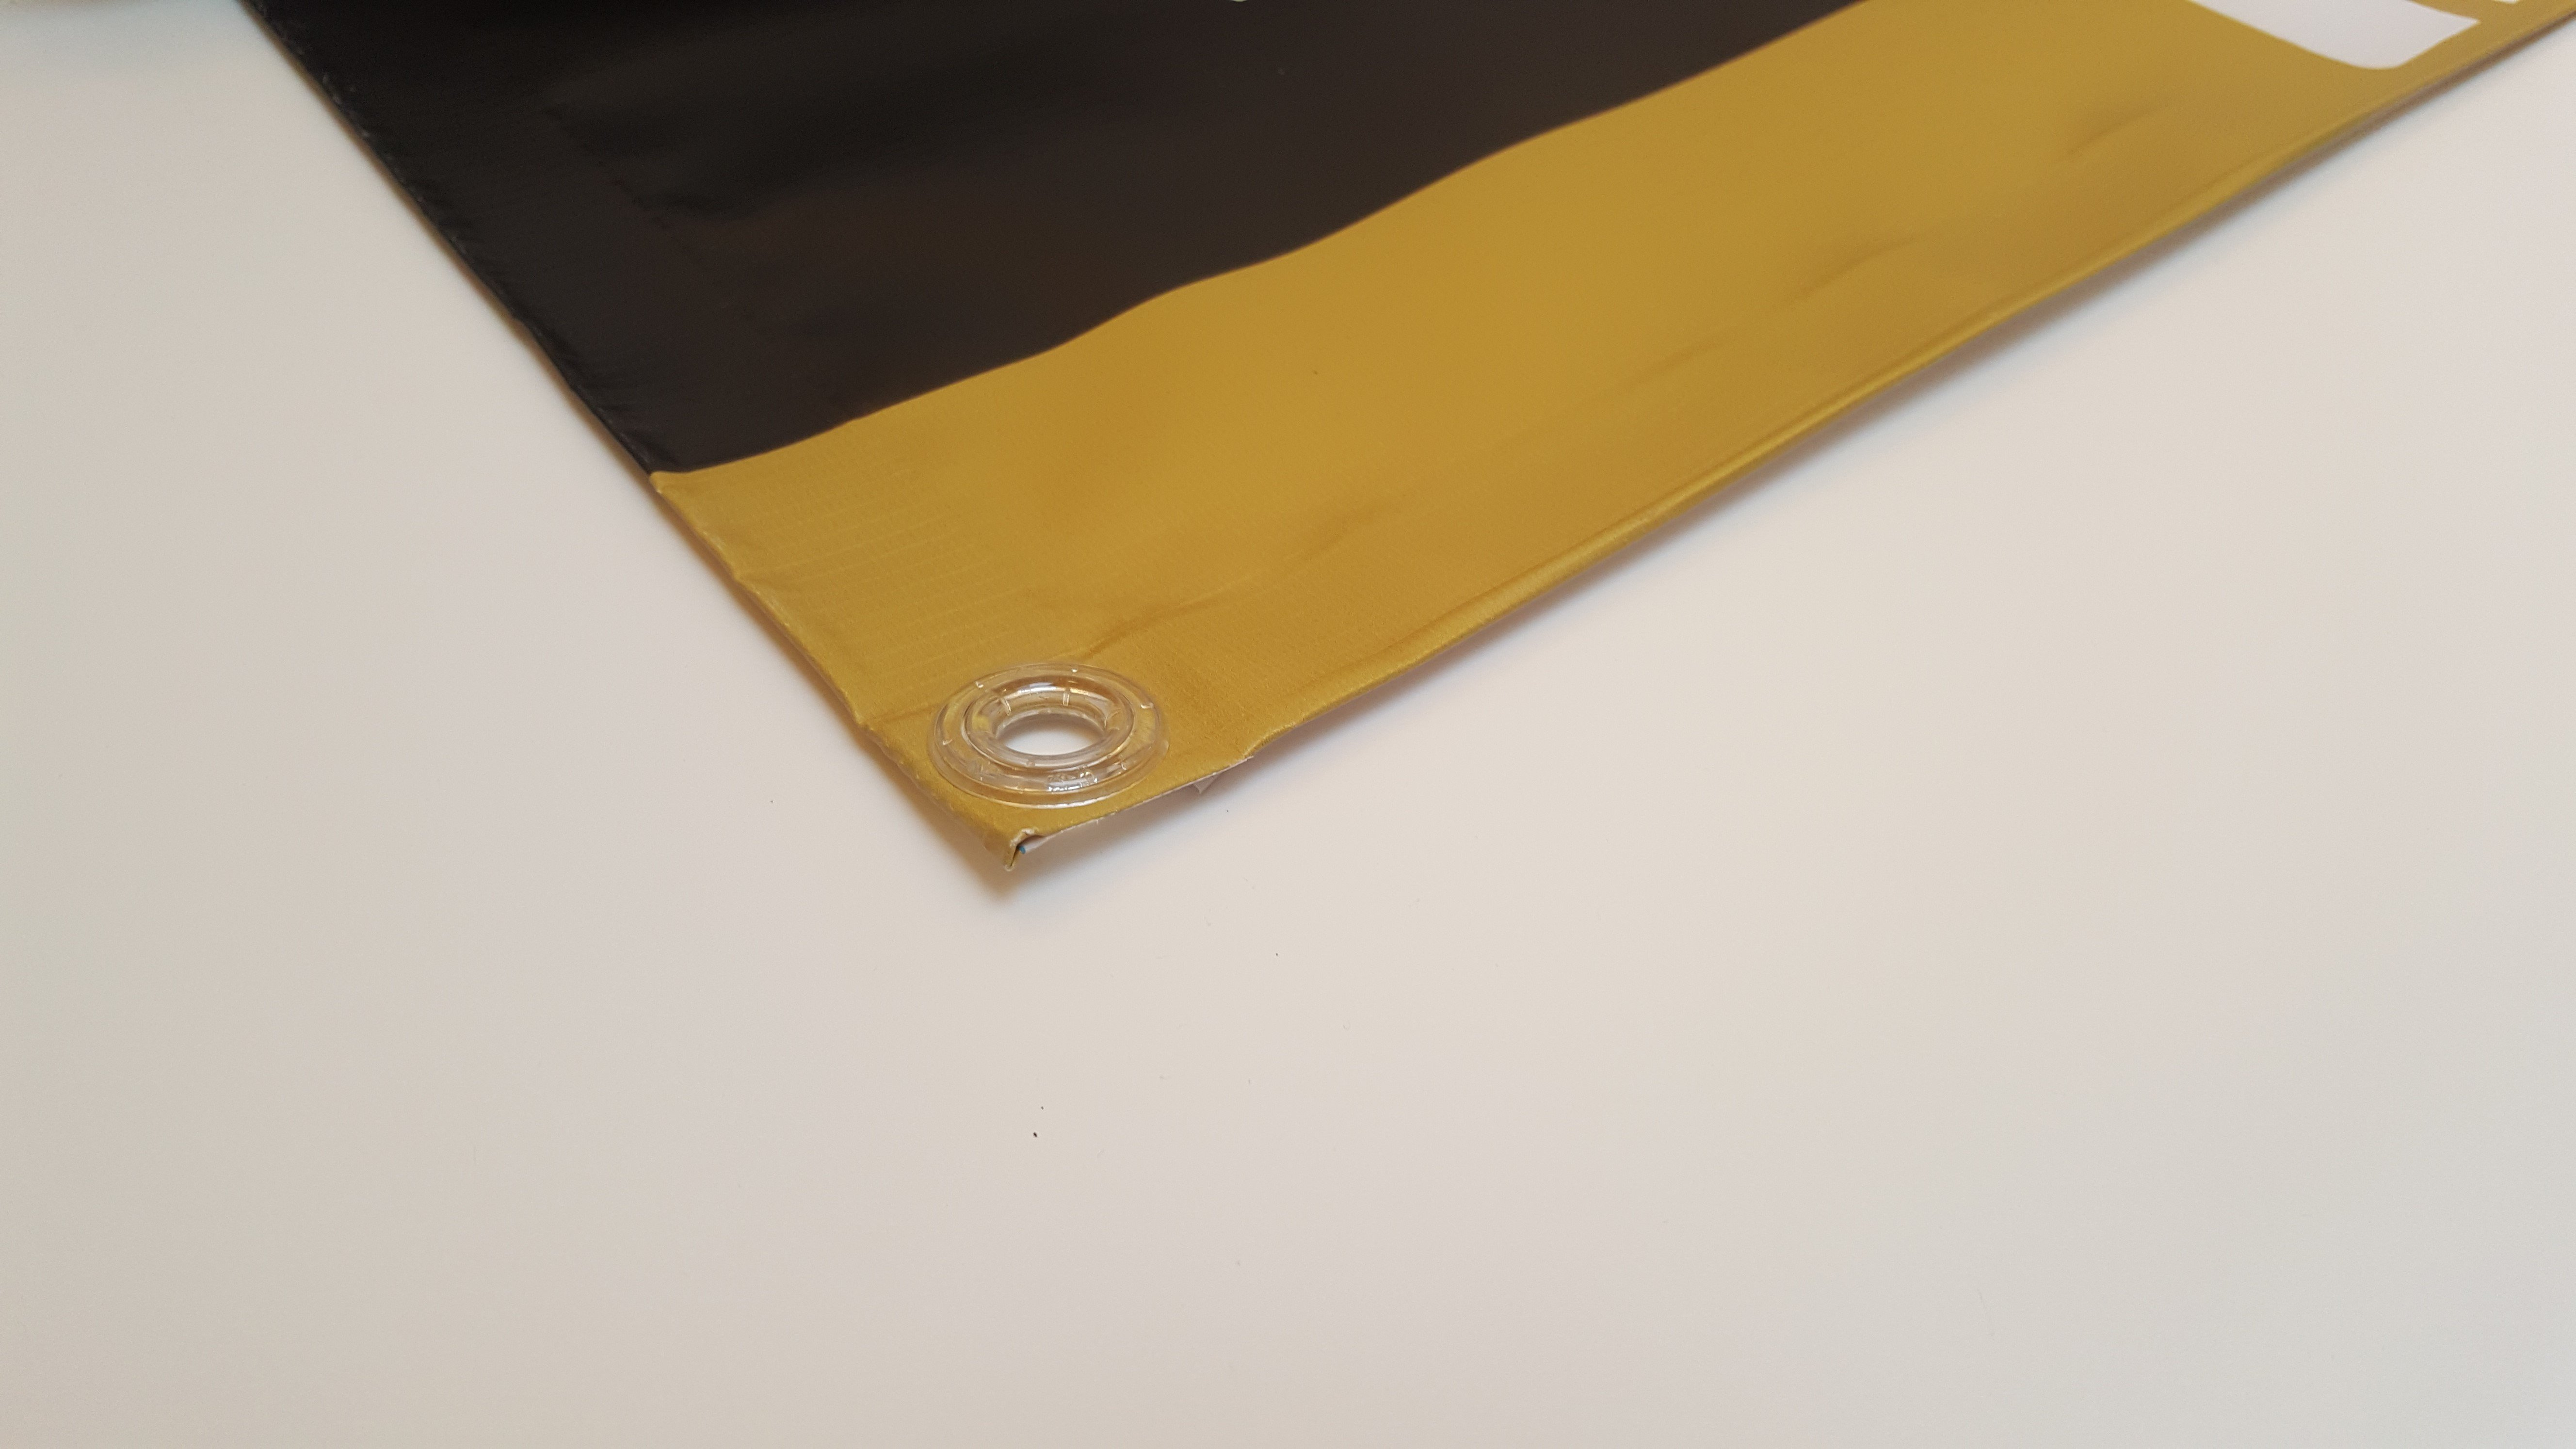 VC-Banner Hem-and-Eyelets-every-50cm Printing UK, Next Day Delivery - www.ontimeprint.co.uk